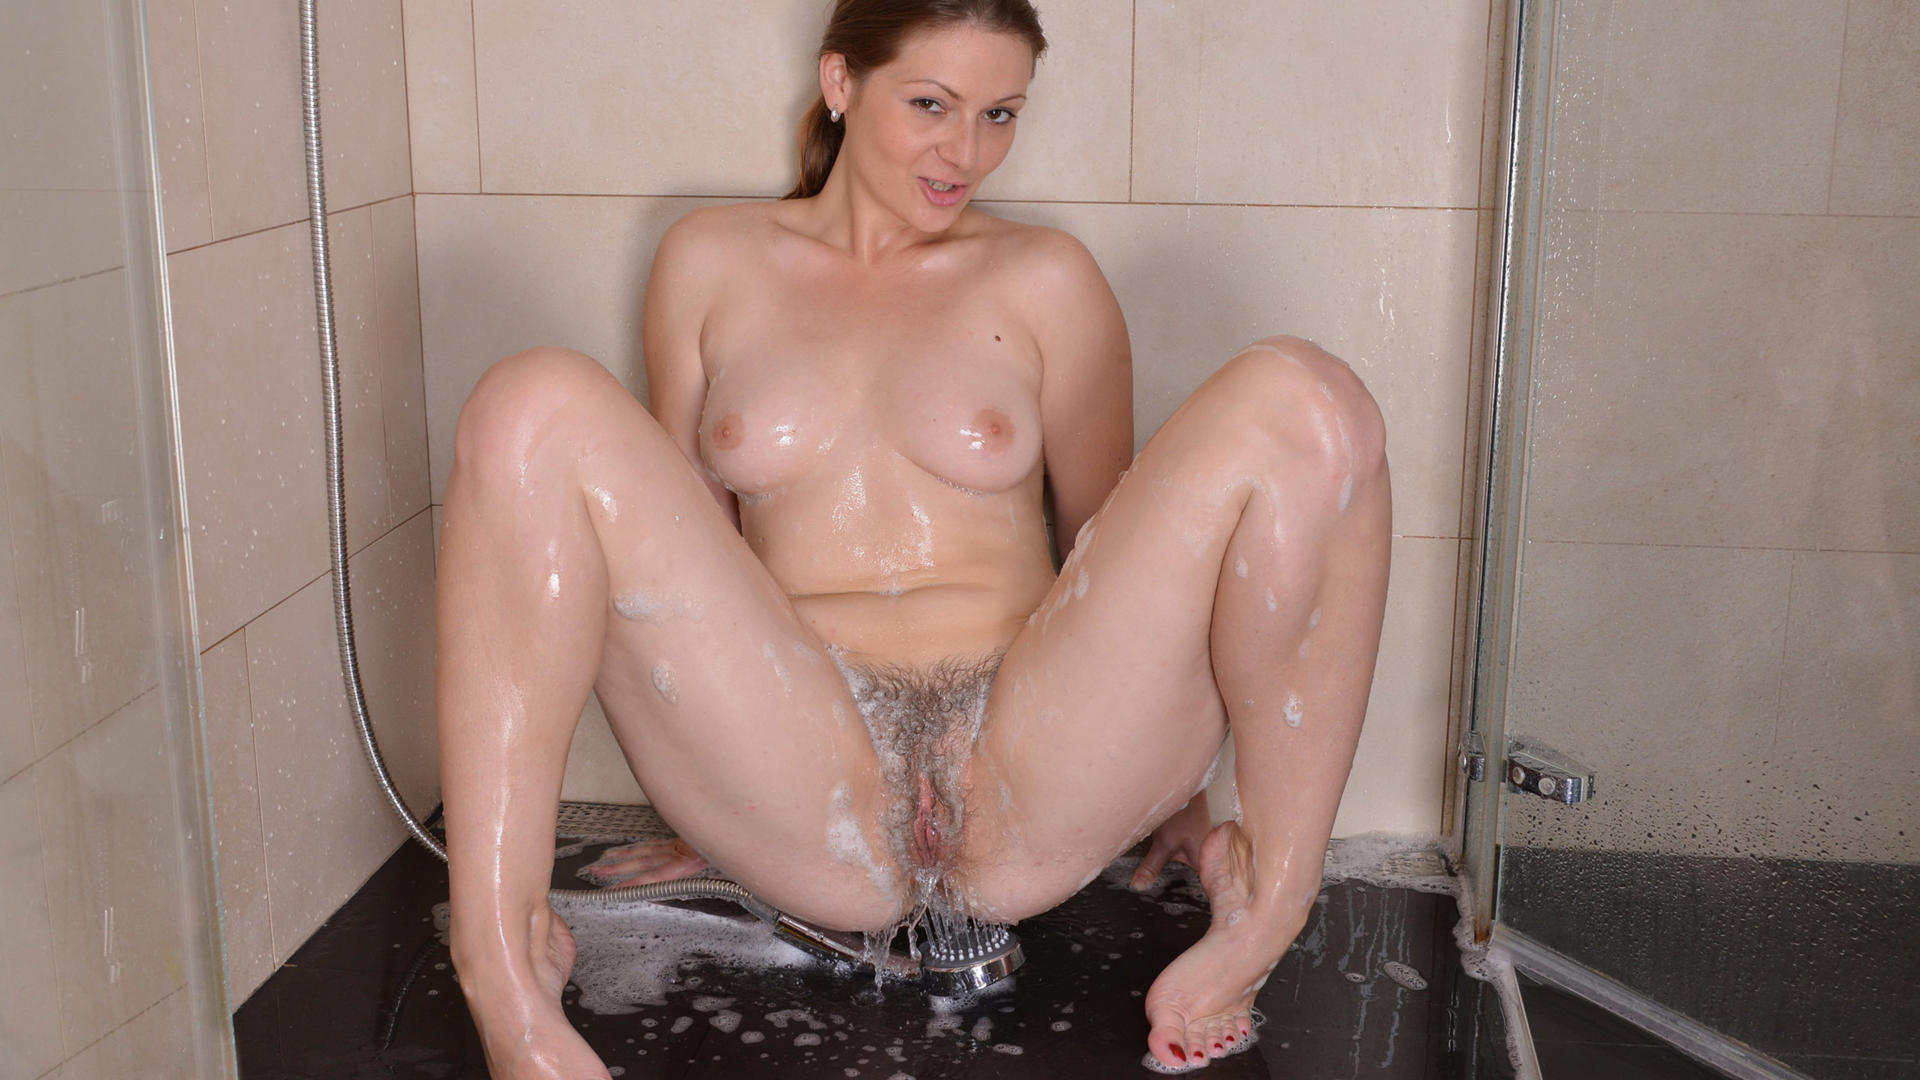 Nude shower amateur girls